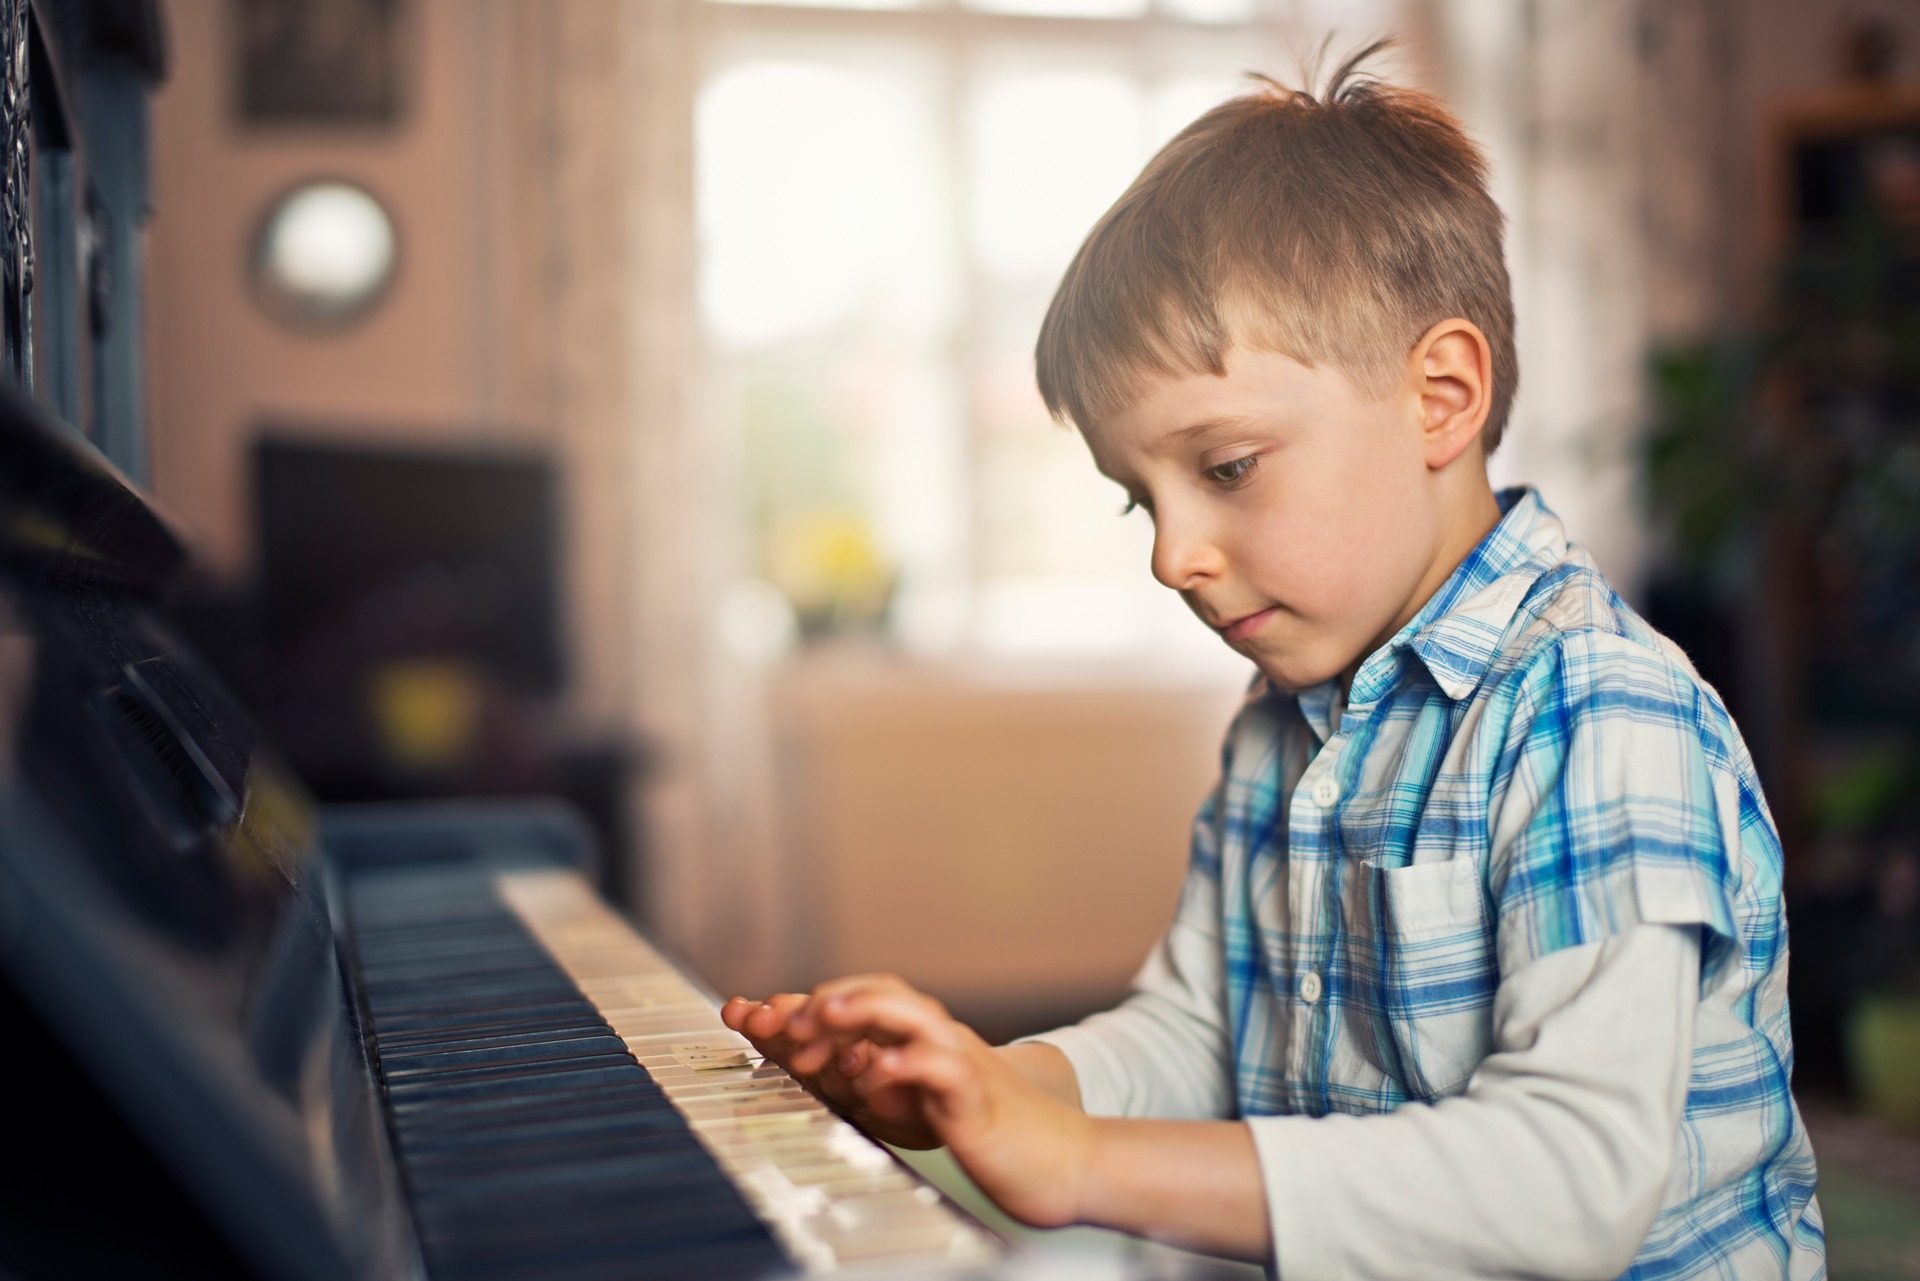 Nanogirl Michelle Dickinson: Students who play musical instrument perform better academically